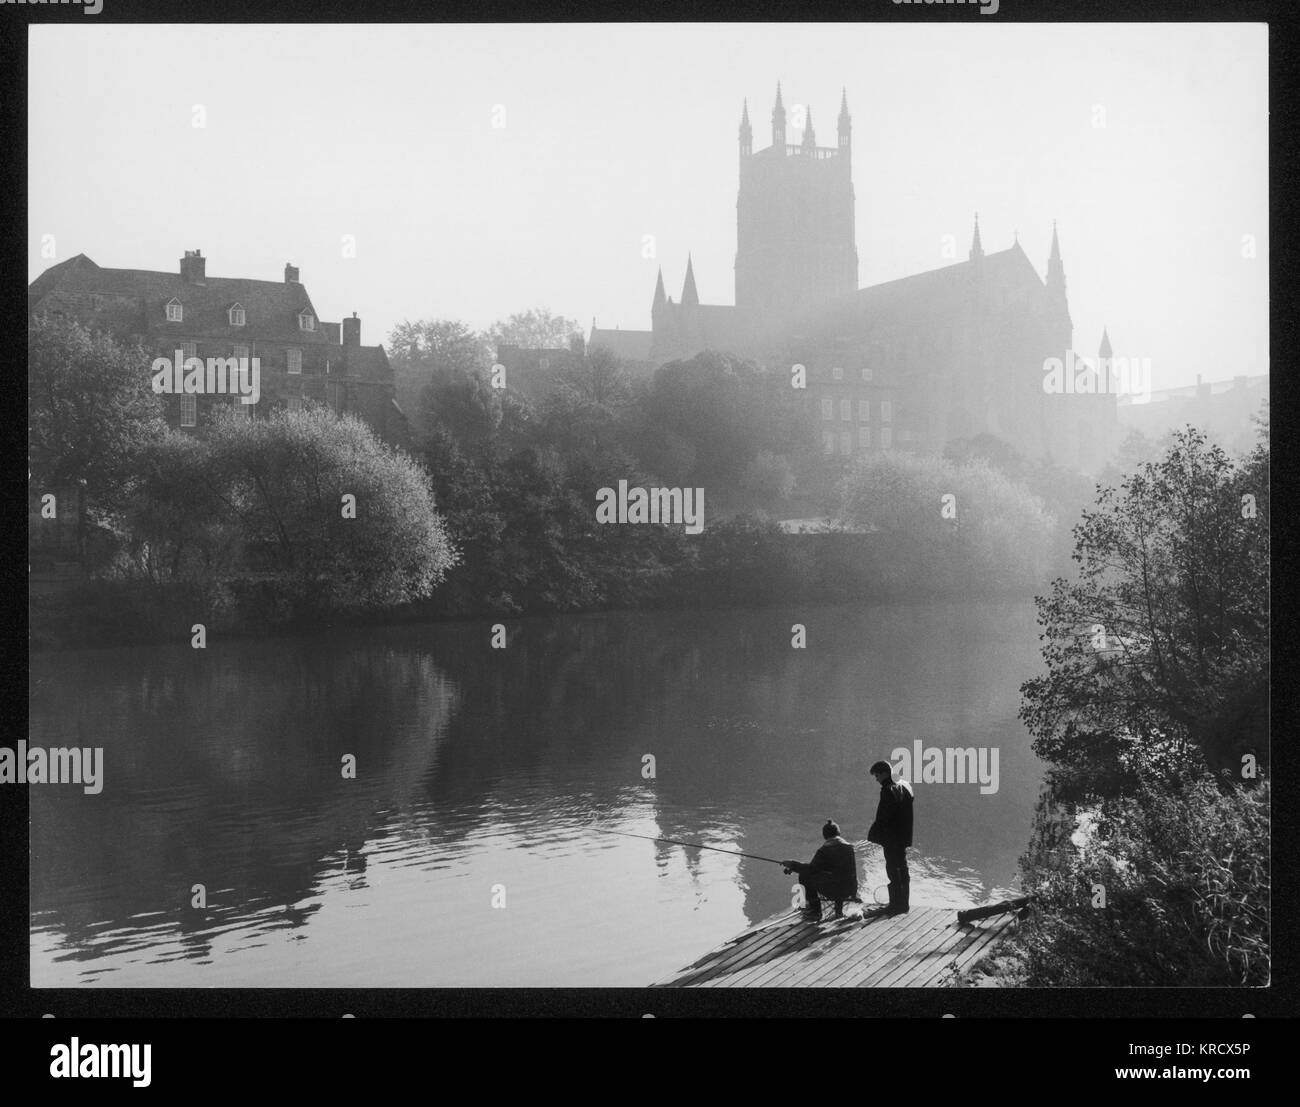 Angling in the River Severn on a misty morning, while  the sun rises behind  Worcester Cathedral in the  distance. - Stock Image